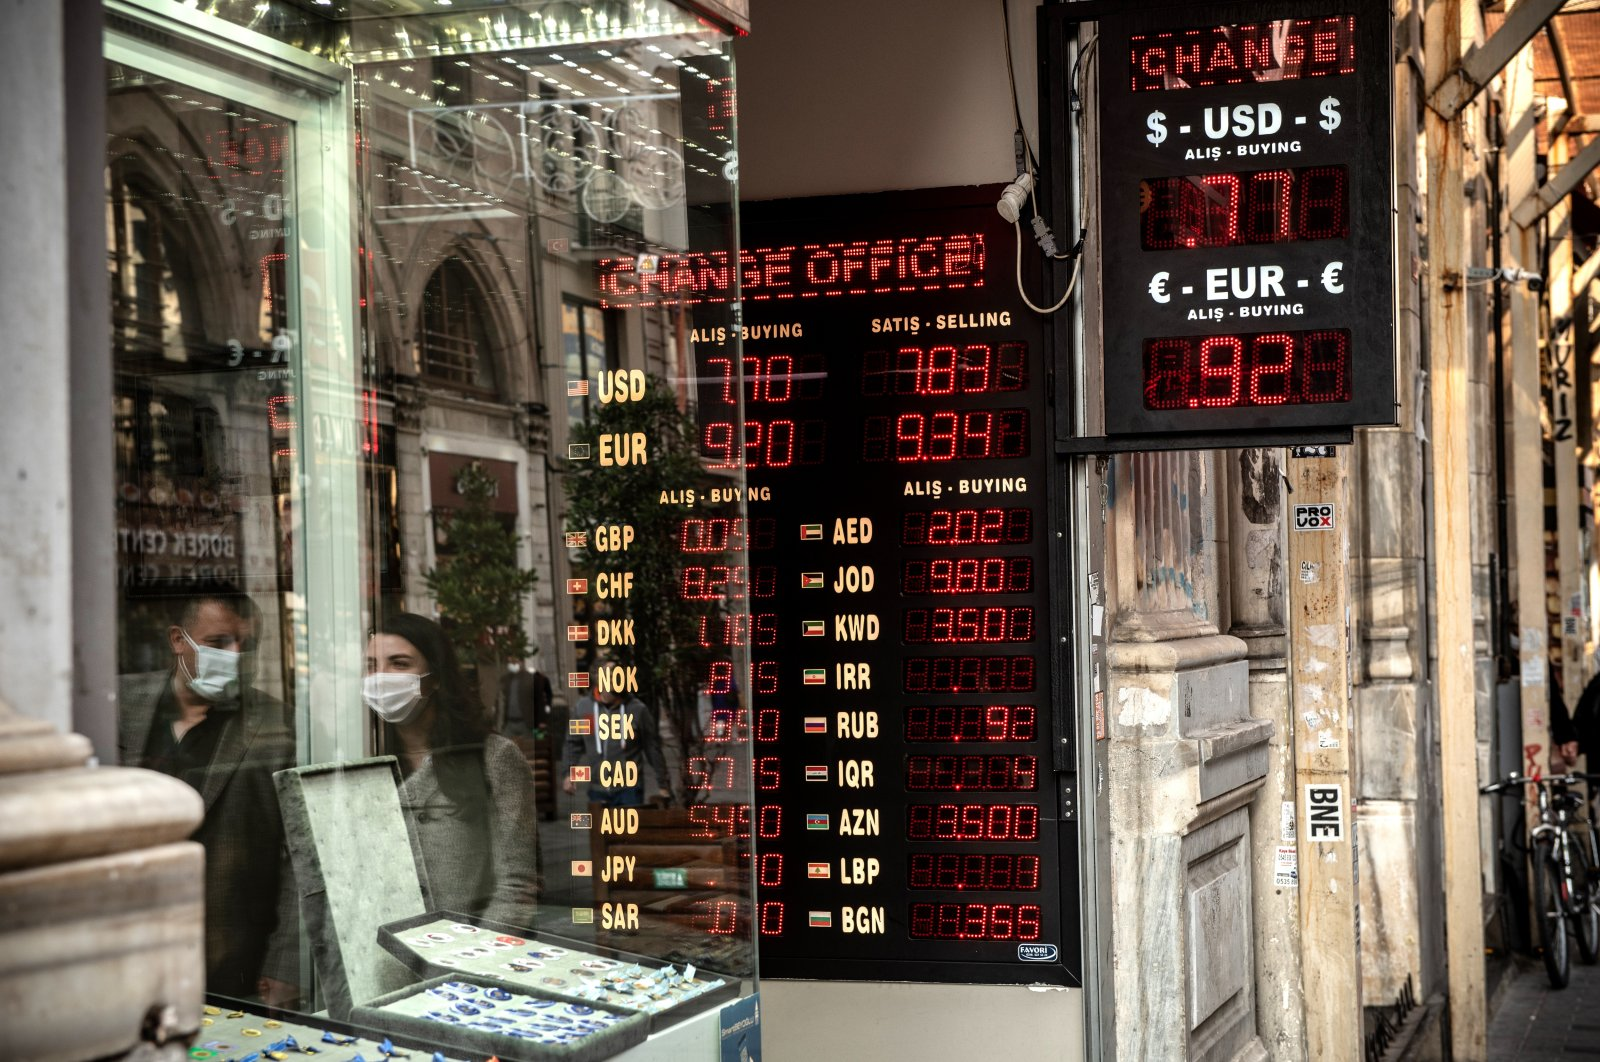 A currency exchange office on İstiklal Avenue, Istanbul, Turkey, Nov. 30. (Photo by Getty Images)